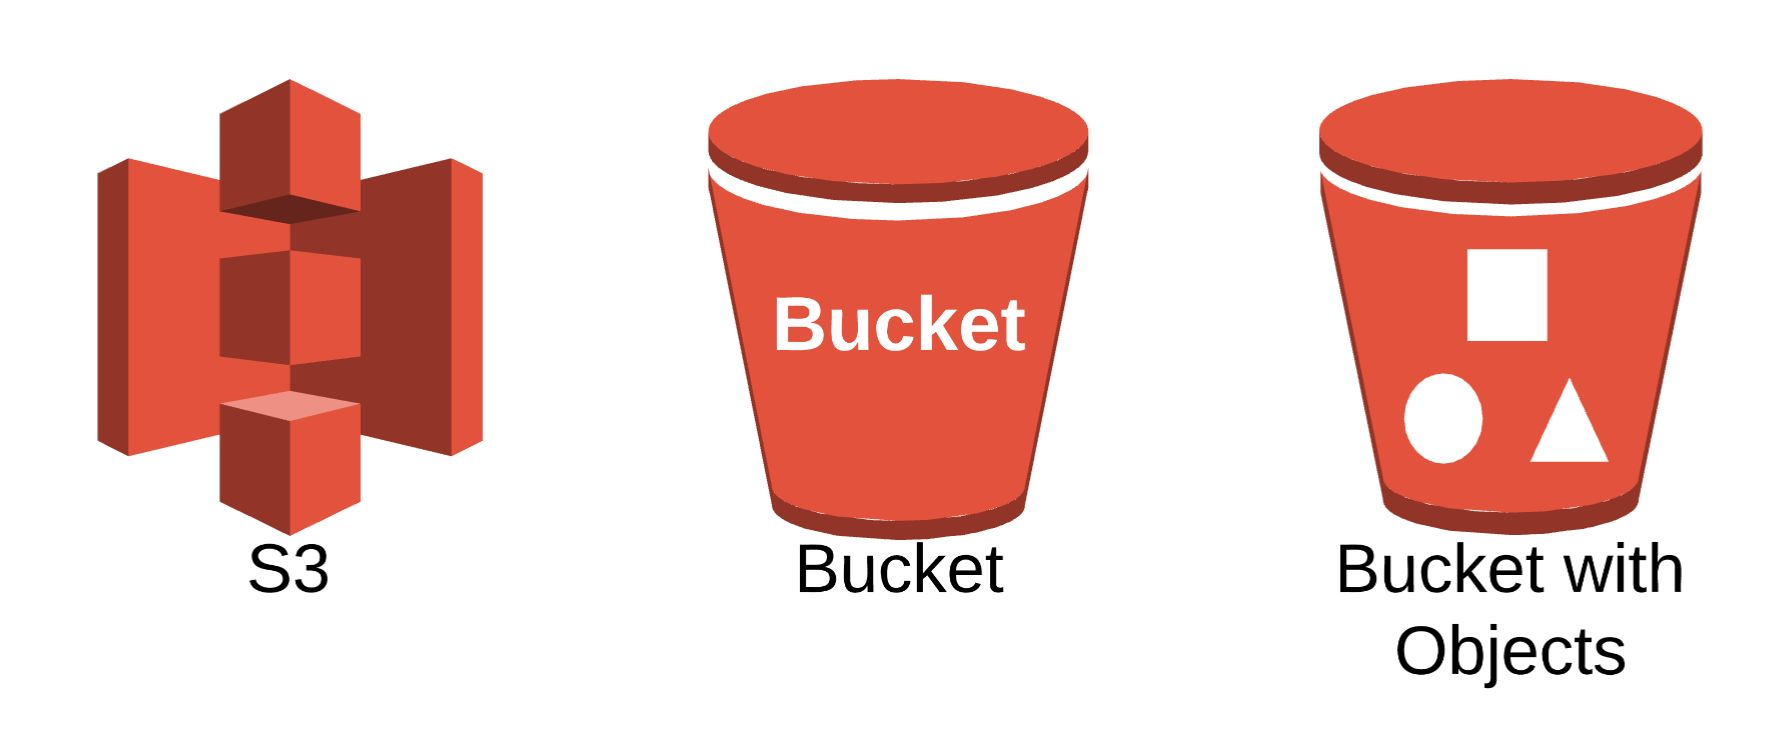 /how-to-create-an-aws-s3-bucket-zr183u37 feature image